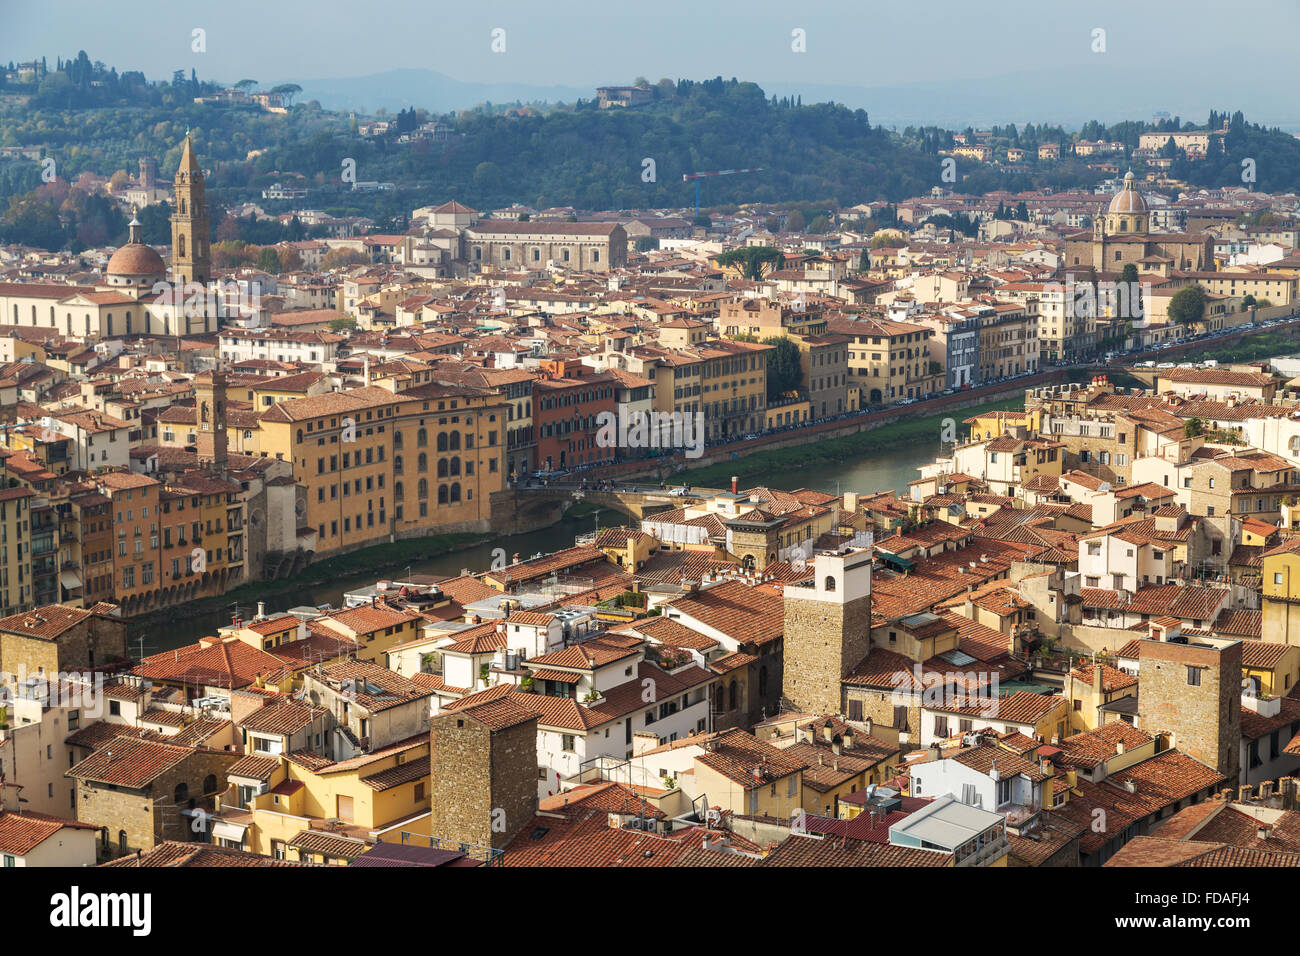 View over the city with the Arno river, Florence, Tuscany, Italy - Stock Image